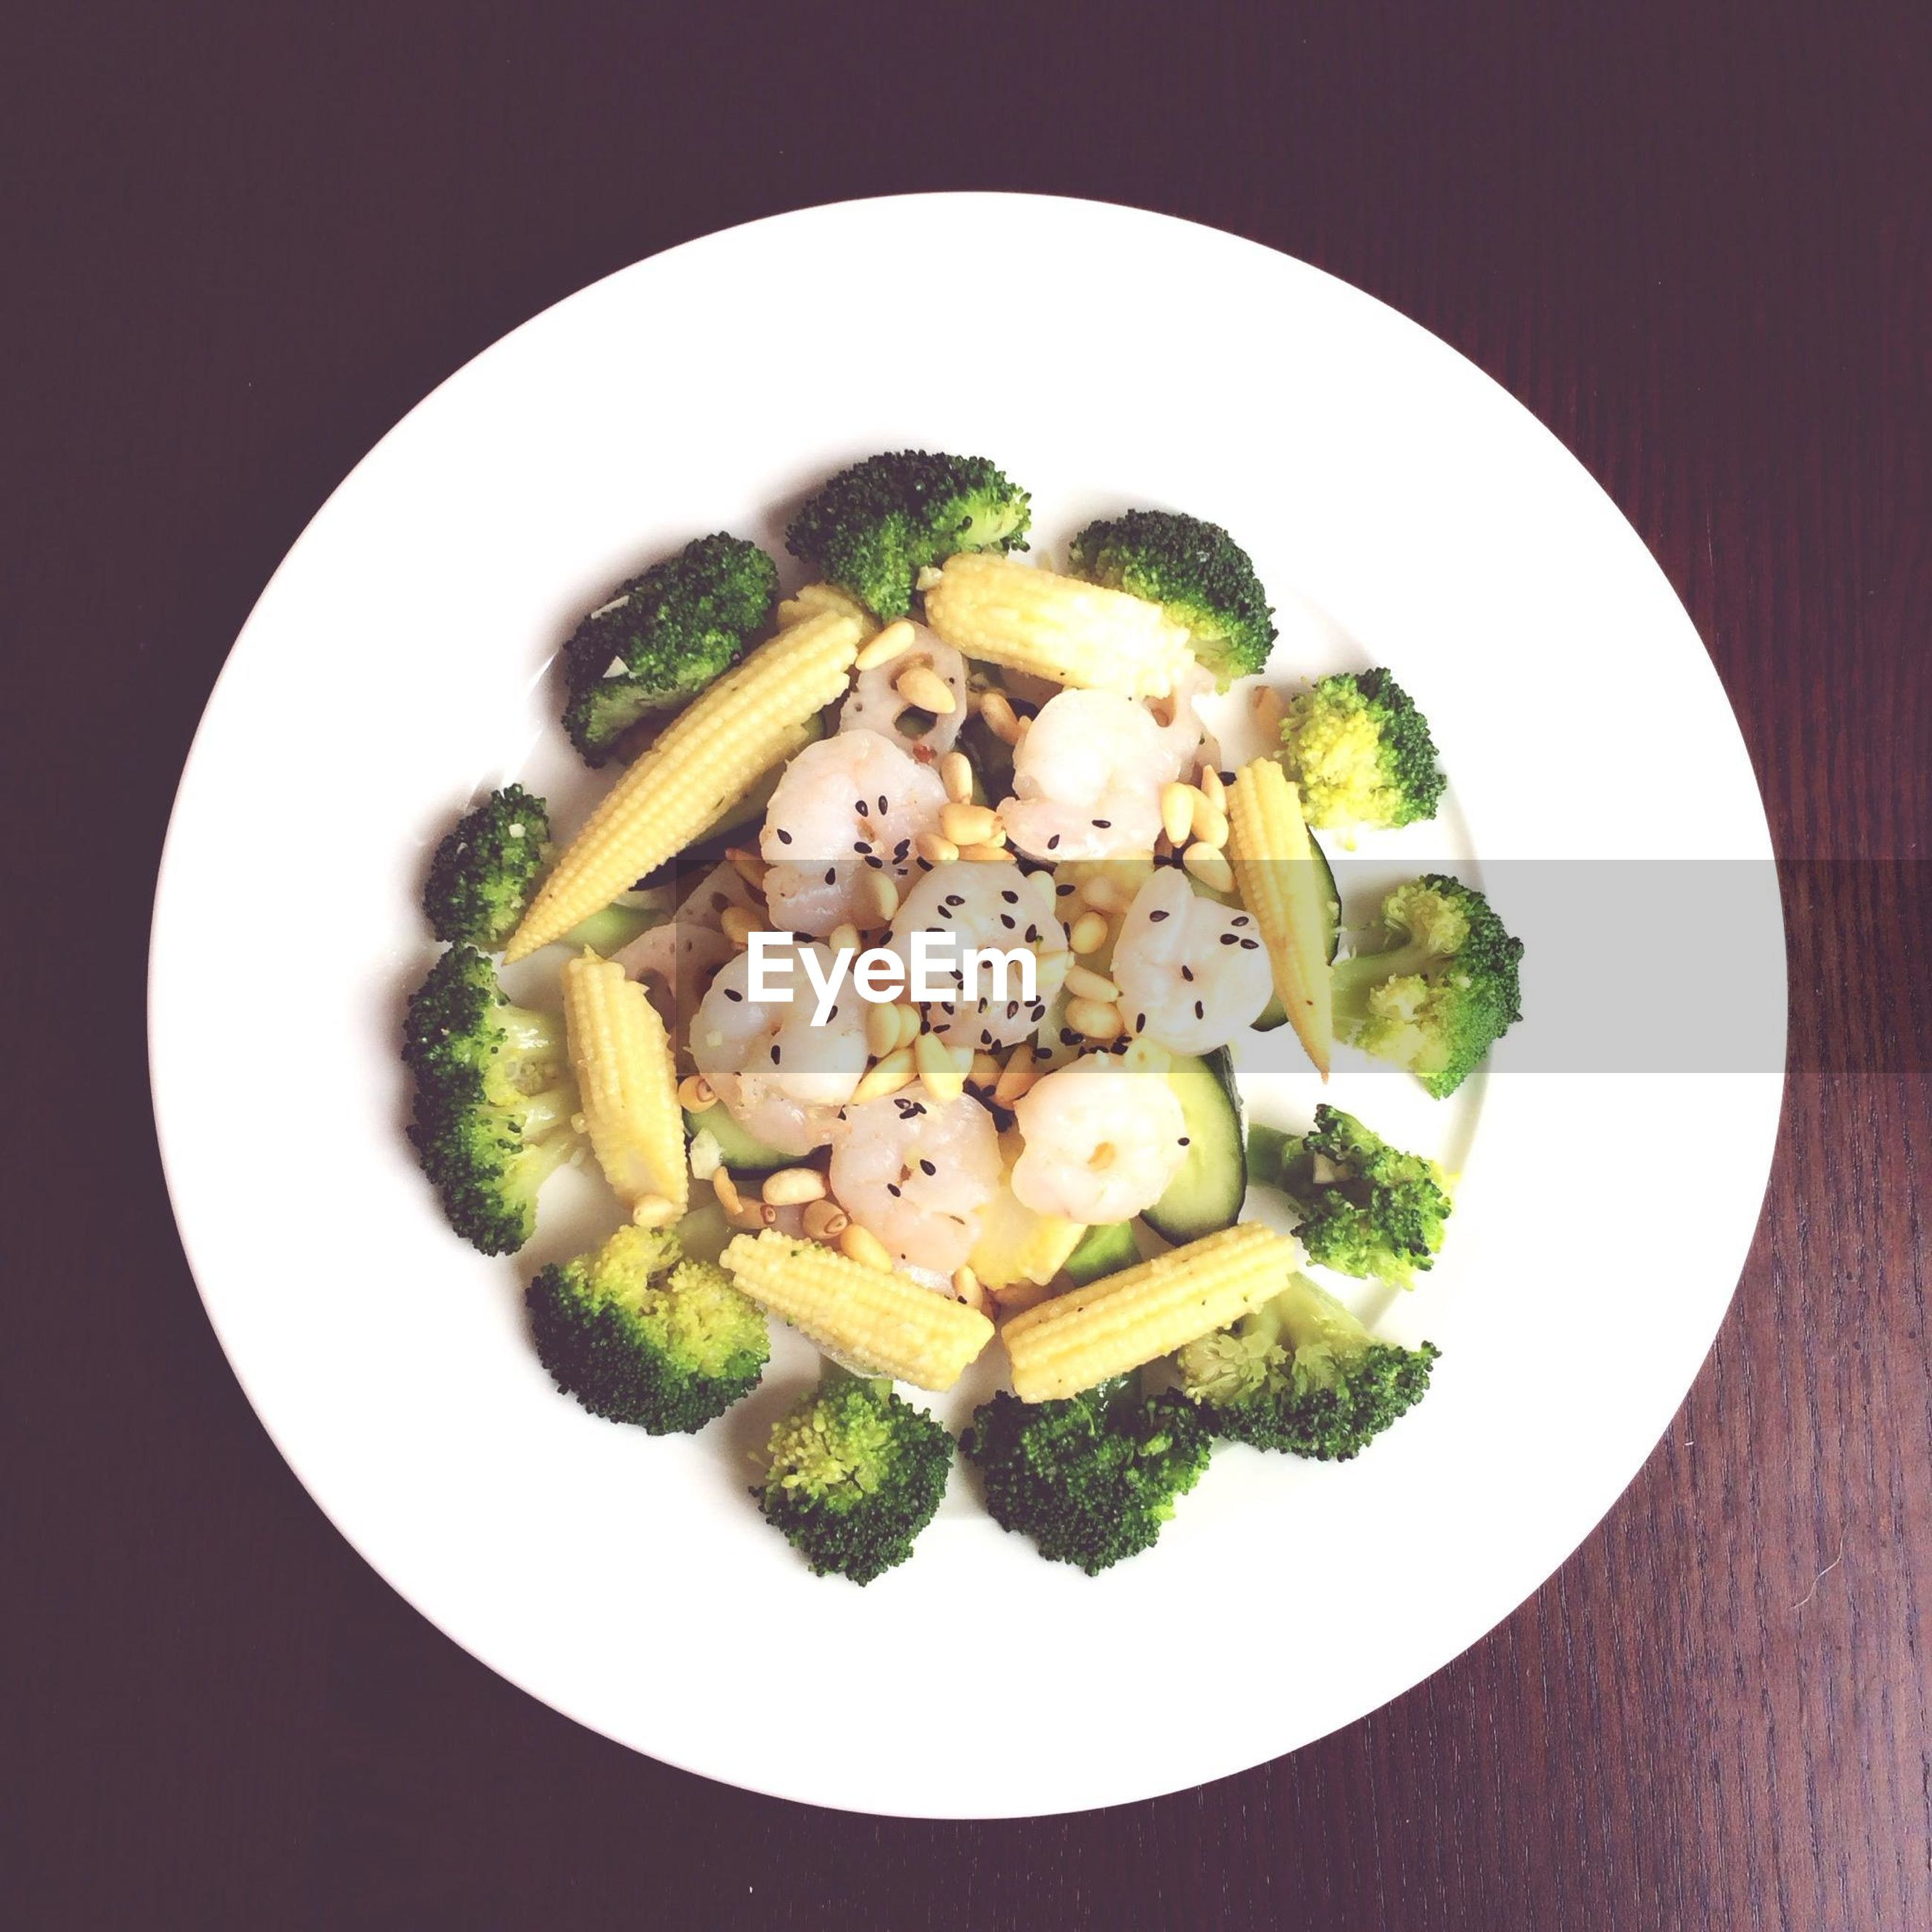 food and drink, food, ready-to-eat, freshness, indoors, plate, healthy eating, meal, serving size, still life, high angle view, table, vegetable, meat, close-up, bowl, salad, directly above, served, indulgence